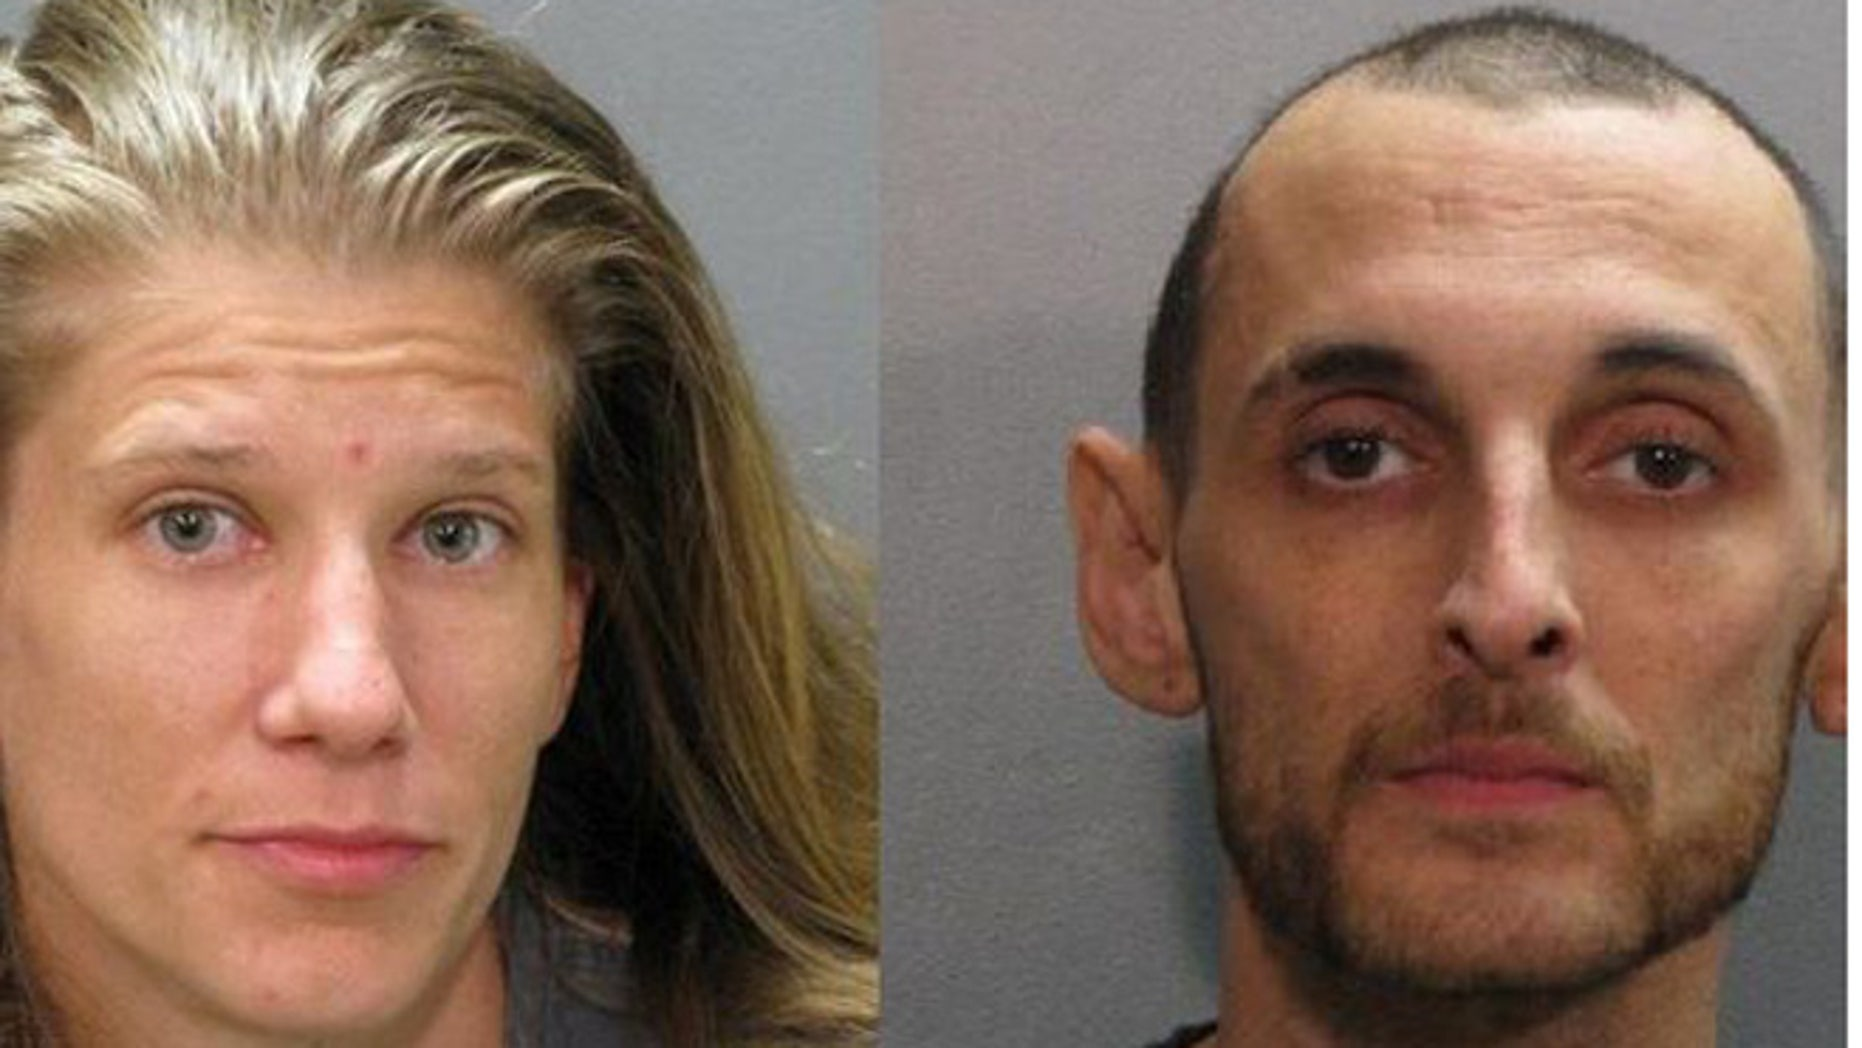 Photos of Leanne Hunn and Ryan Bautista.(Jacksonville Sheriff's Office)